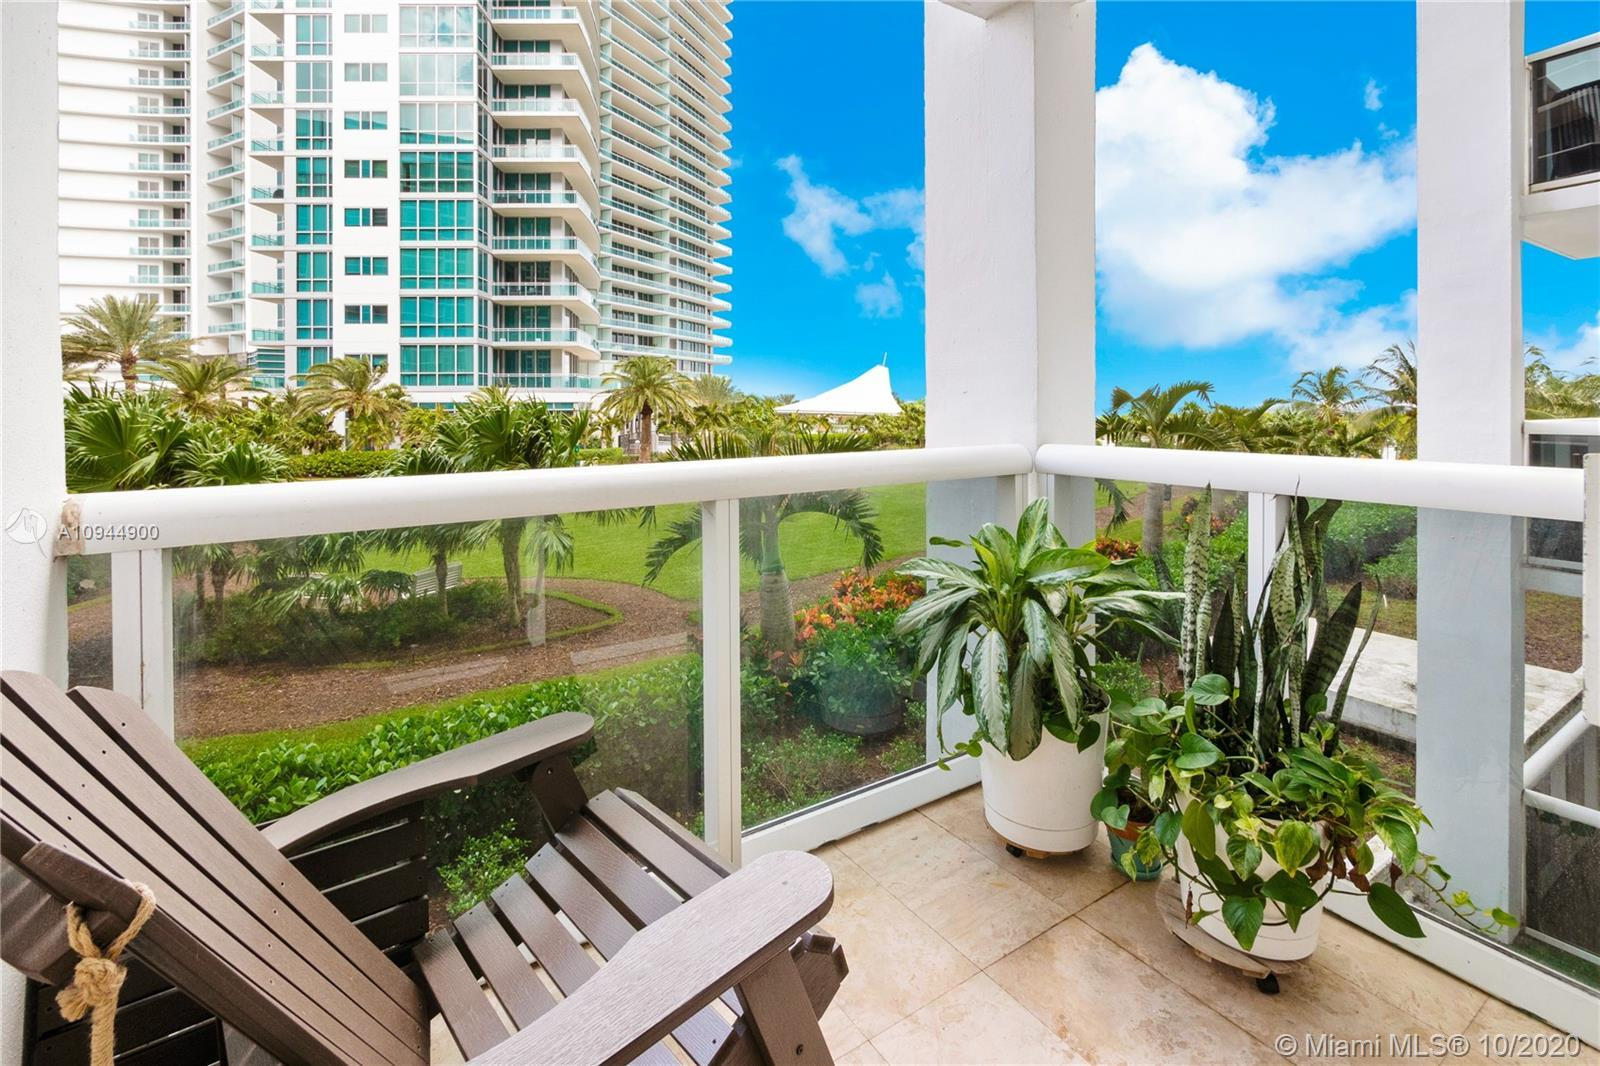 Great luxury studio apartment in one of the most sought after oceanfront properties in South Florida